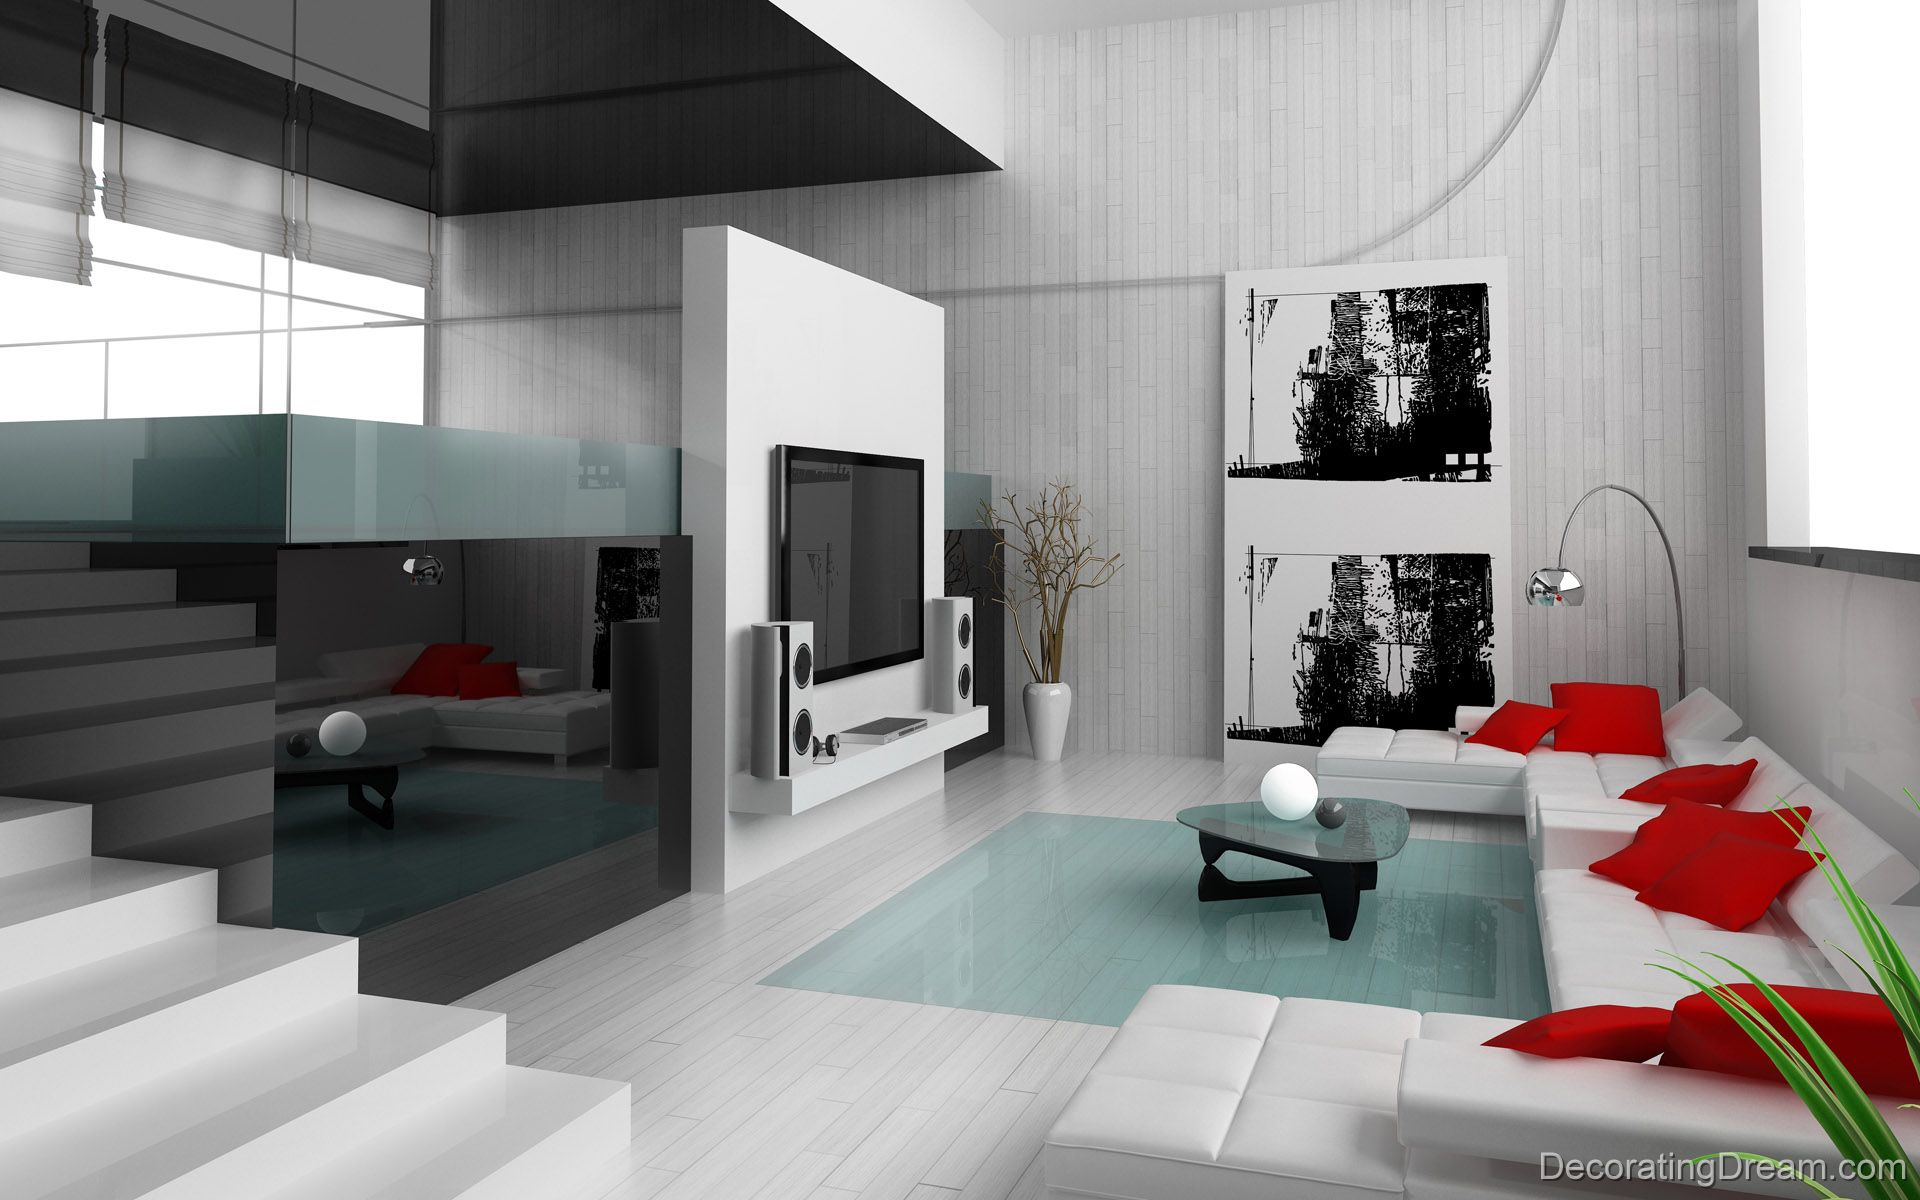 Free Download Luxury Modern Living Room Hq Wallpapers Decorating Dream 1920x1200 For Your Desktop Mobile Tablet Explore 50 Modern Wallpaper Living Room Modern Wallpaper Designs Interior Design Gray Modern